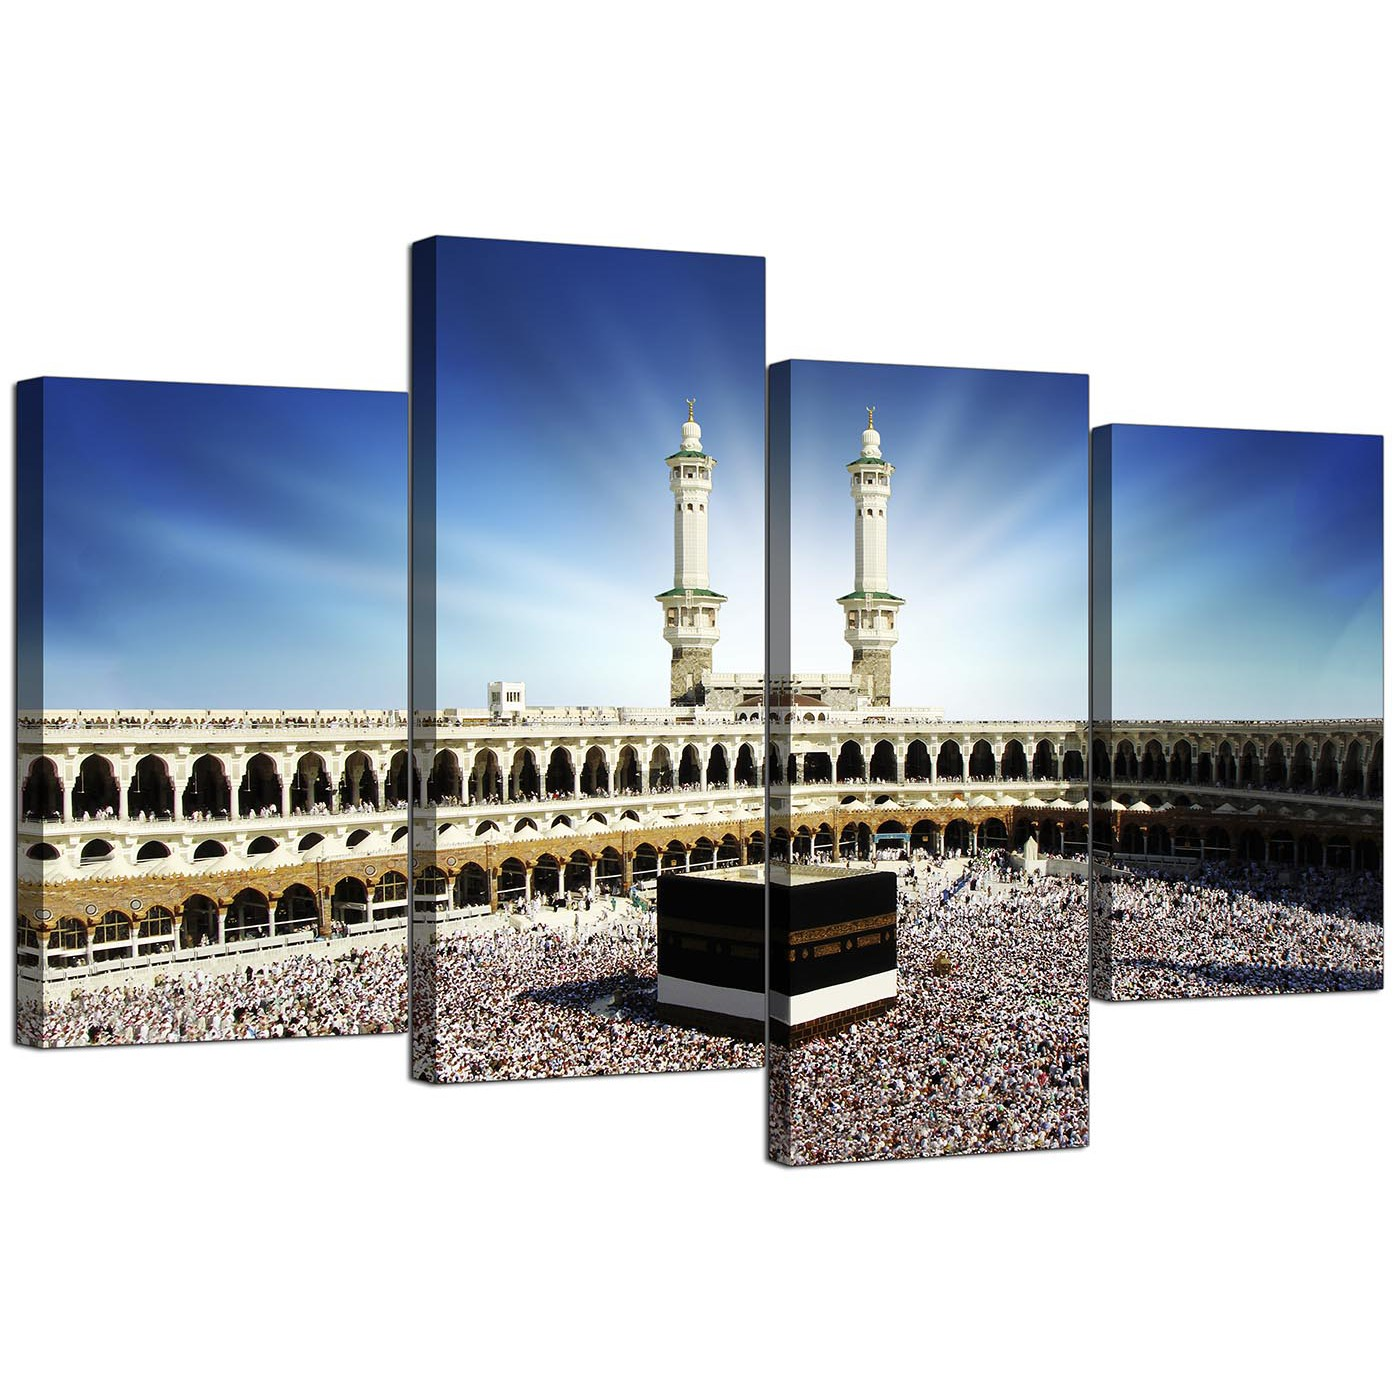 islamic canvas wall art of kaaba hajj in mecca for muslims set of 4 display gallery item 4 cheap canvas prints hallway 130cm x 68cm 4191 display gallery item 5